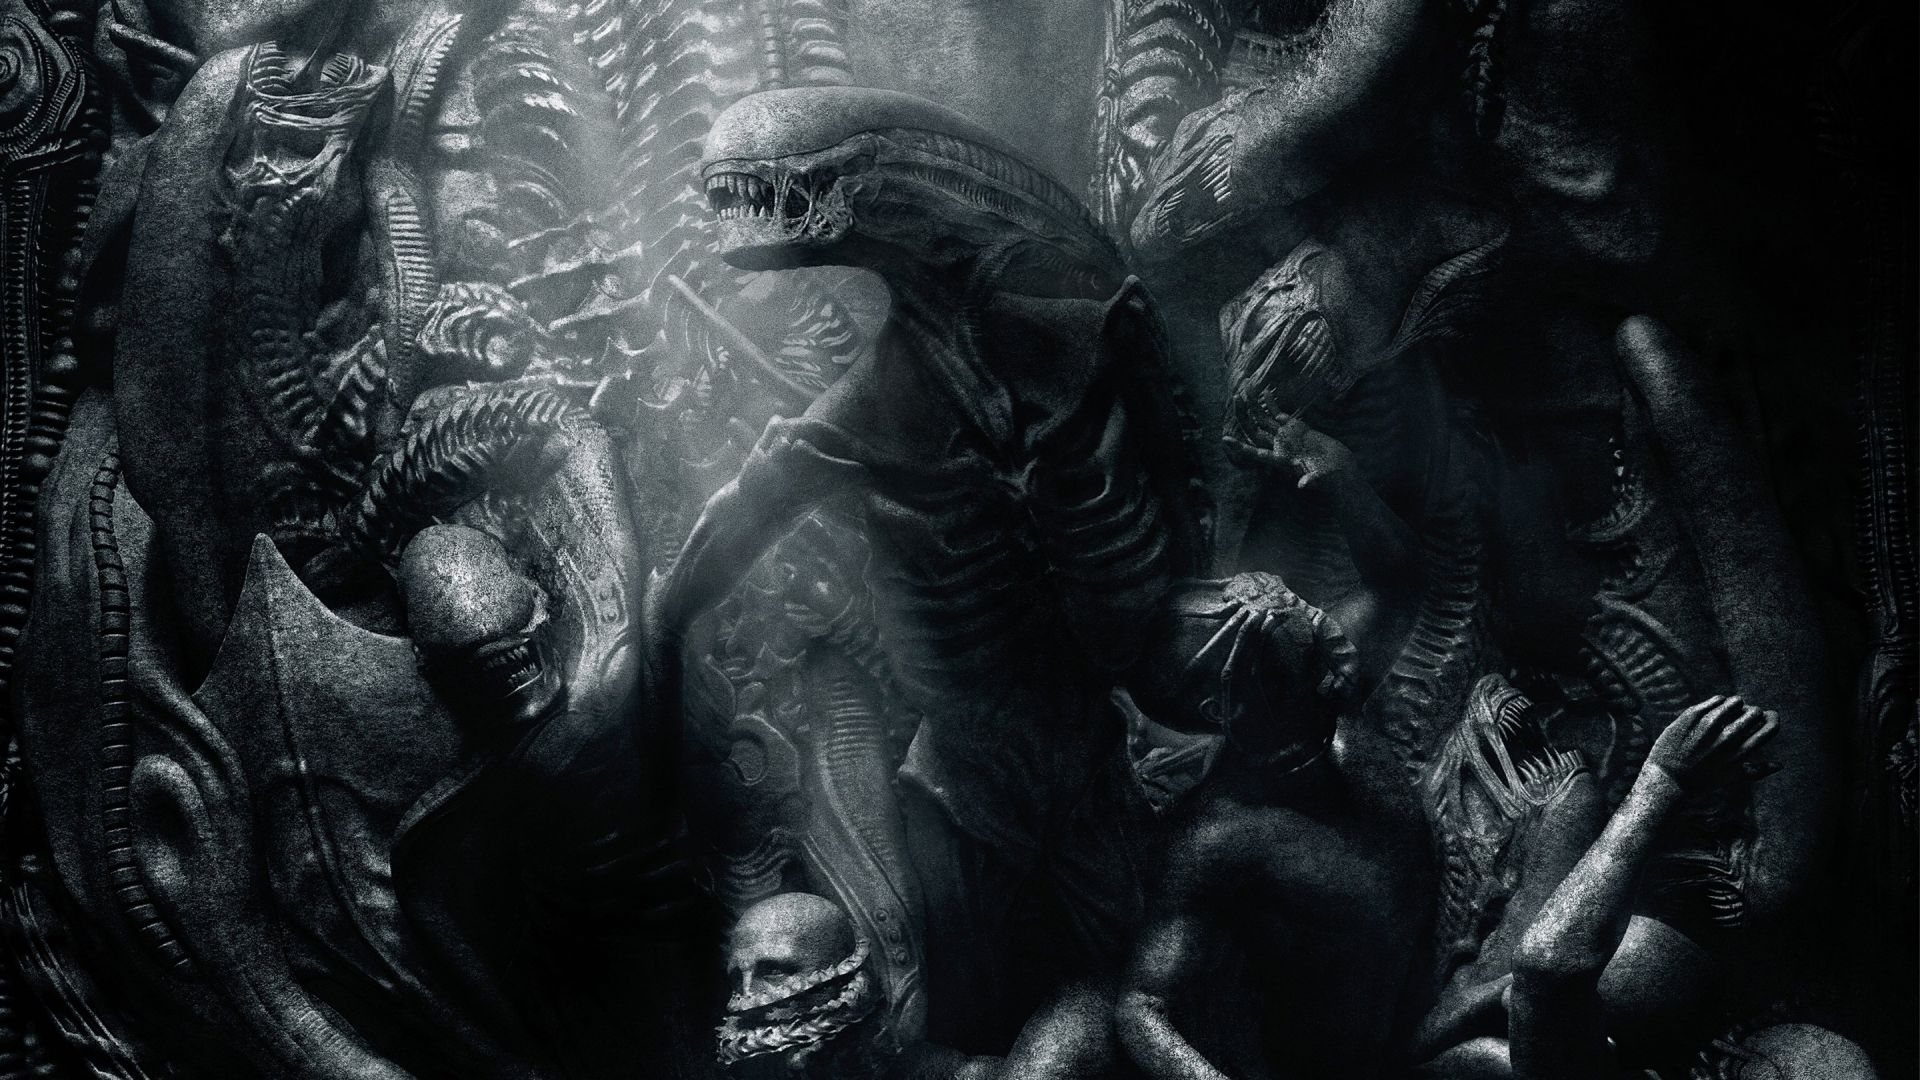 Alien: Covenant, alien, monster, best movies